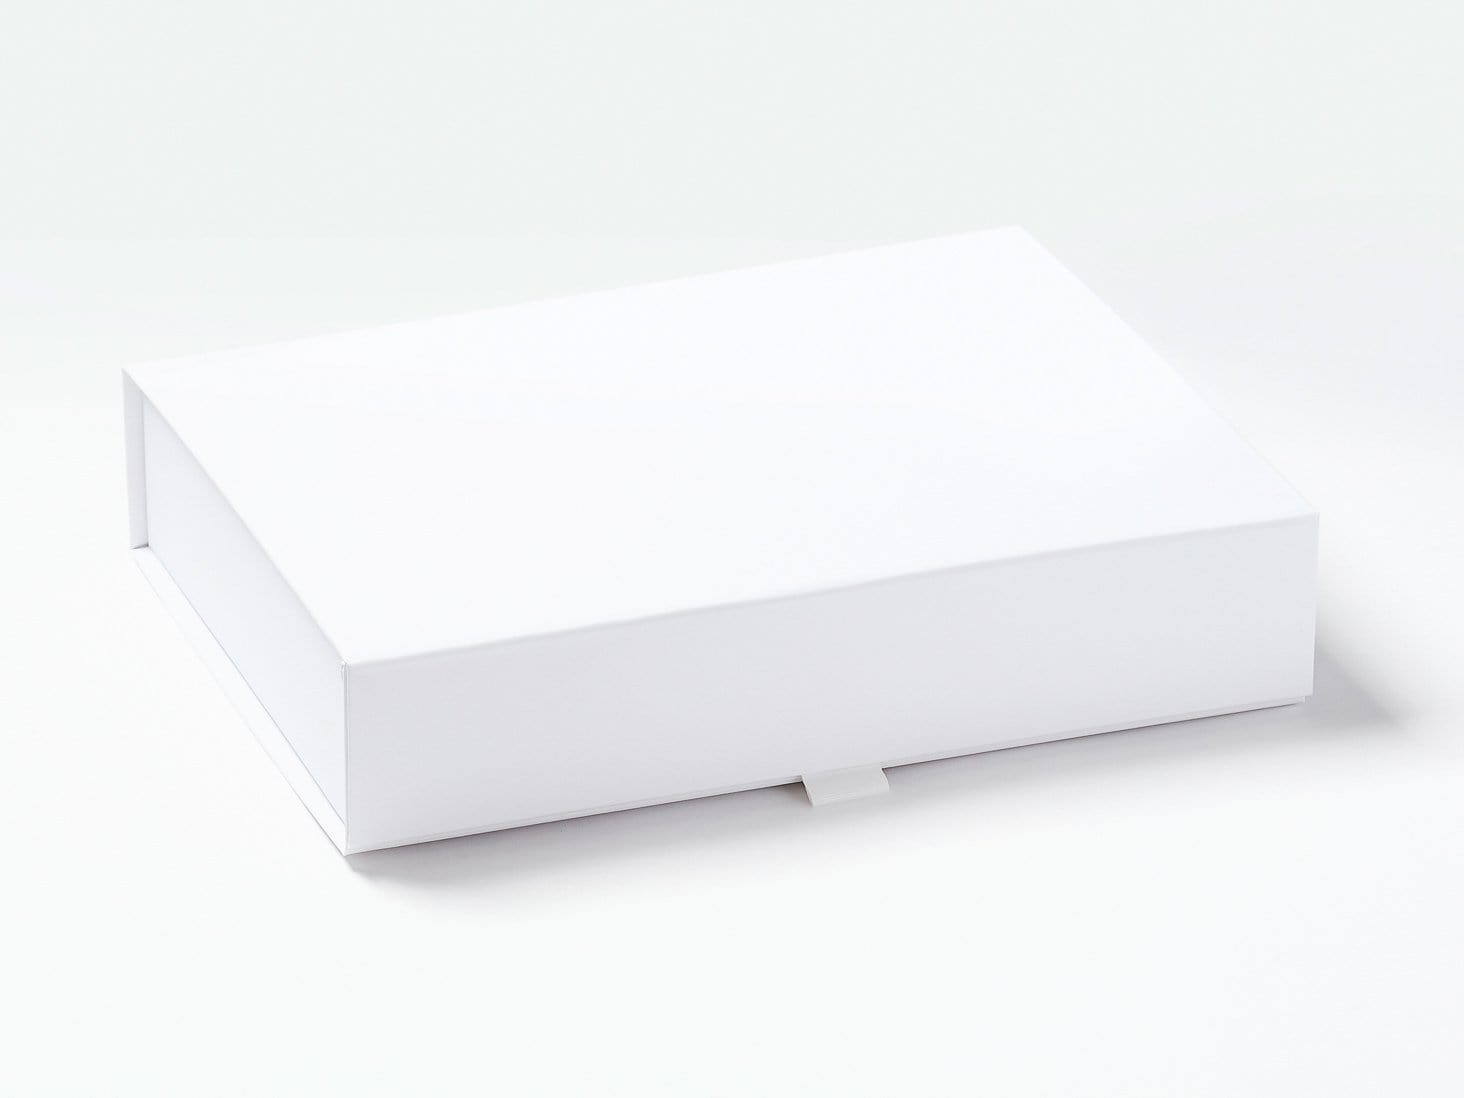 White A4 Shallow Luxury Gift Box Sample